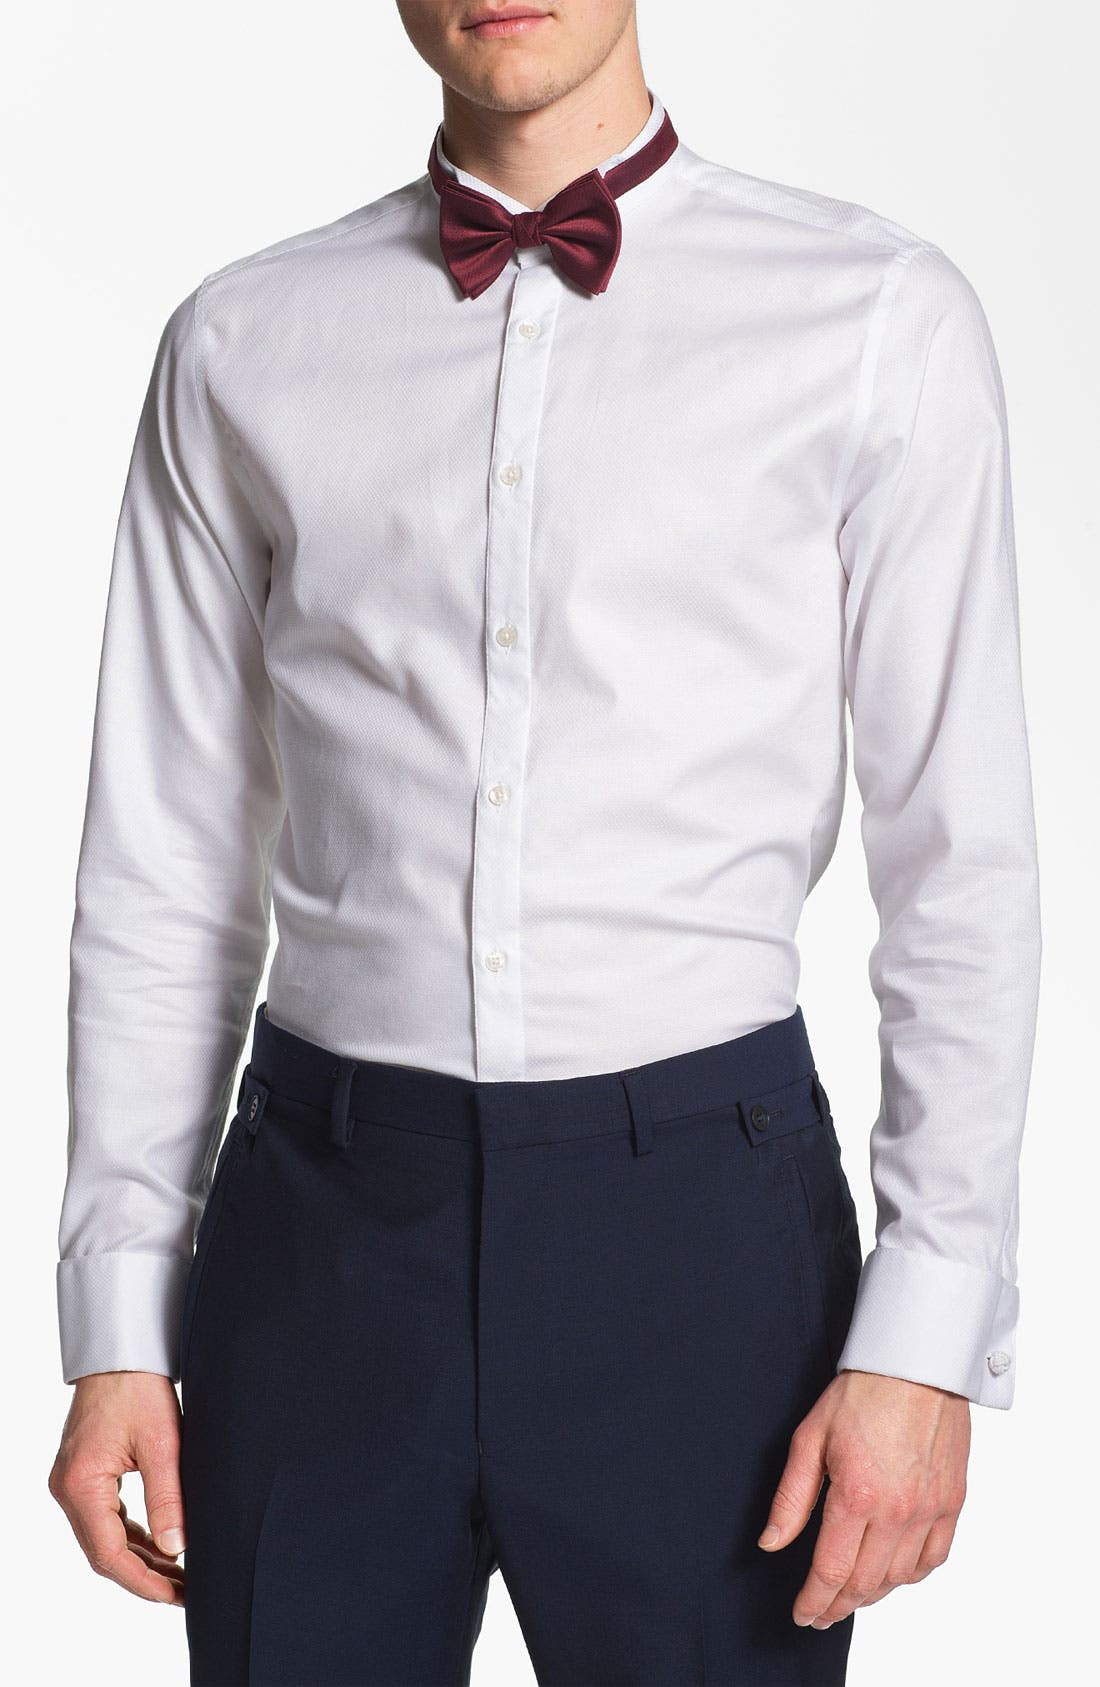 Alternate Image 1 Selected - Topman 'Lux Collection' Wing Collar Dress Shirt